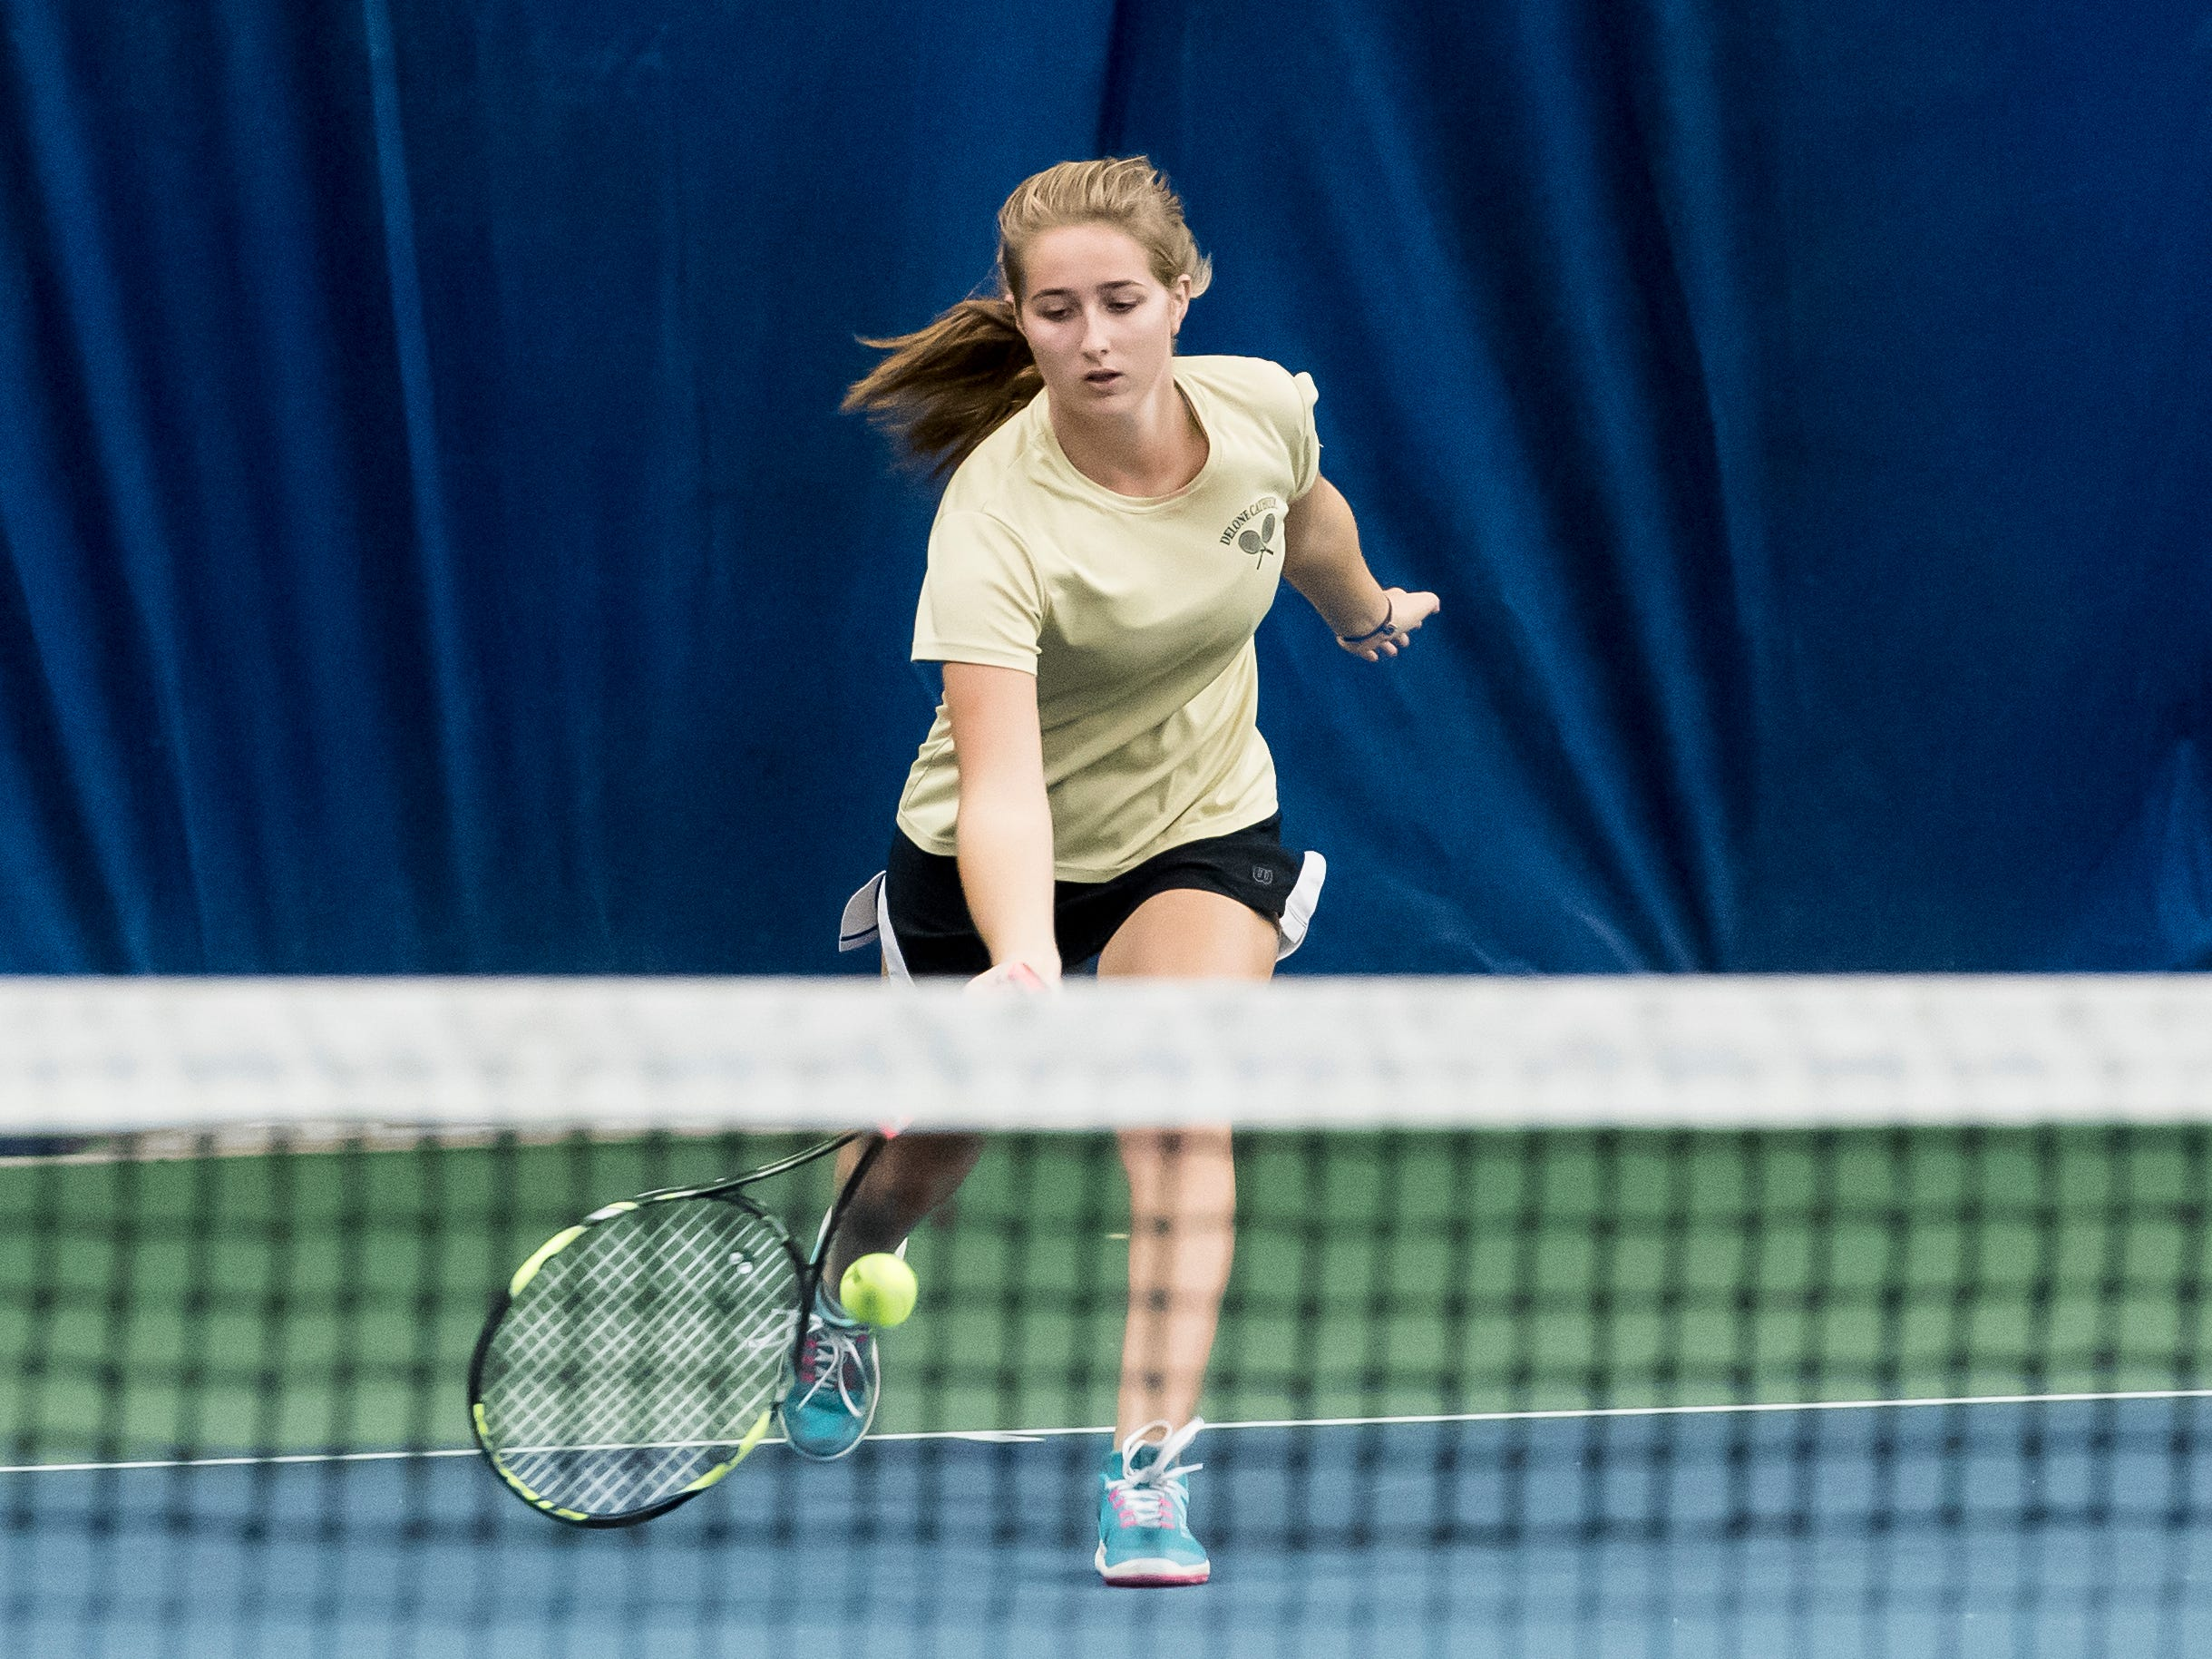 Delone Catholic's Ellie Neudecker scoops a low ball during the championship match in the YAIAA 2A singles tournament at Wisehaven Tennis Center in York on October 6, 2018. Neudecker defeated Delone Catholic teammate Becca Dolce 6-0, 6-1.